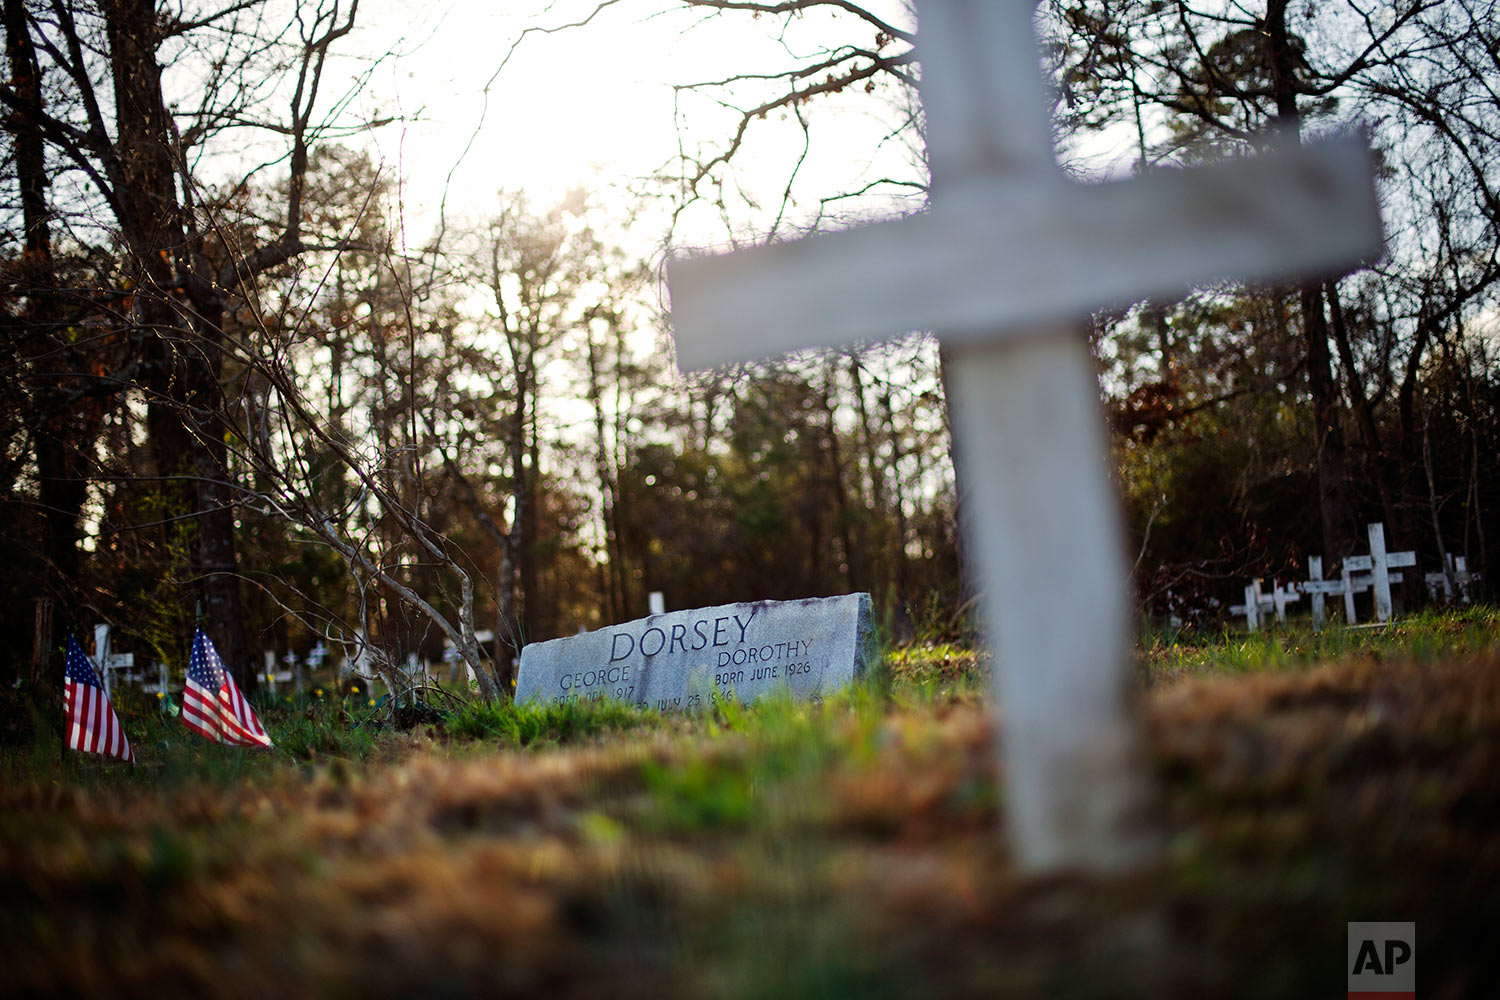 A tombstone marks the grave of George Dorsey and his sister, Dorothy Malcom who in 1946 were stopped by a white mob who dragged them to a riverbank and shot them multiple times, in Bishop, Ga., Thursday, Feb. 22, 2018. (AP Photo/David Goldman)